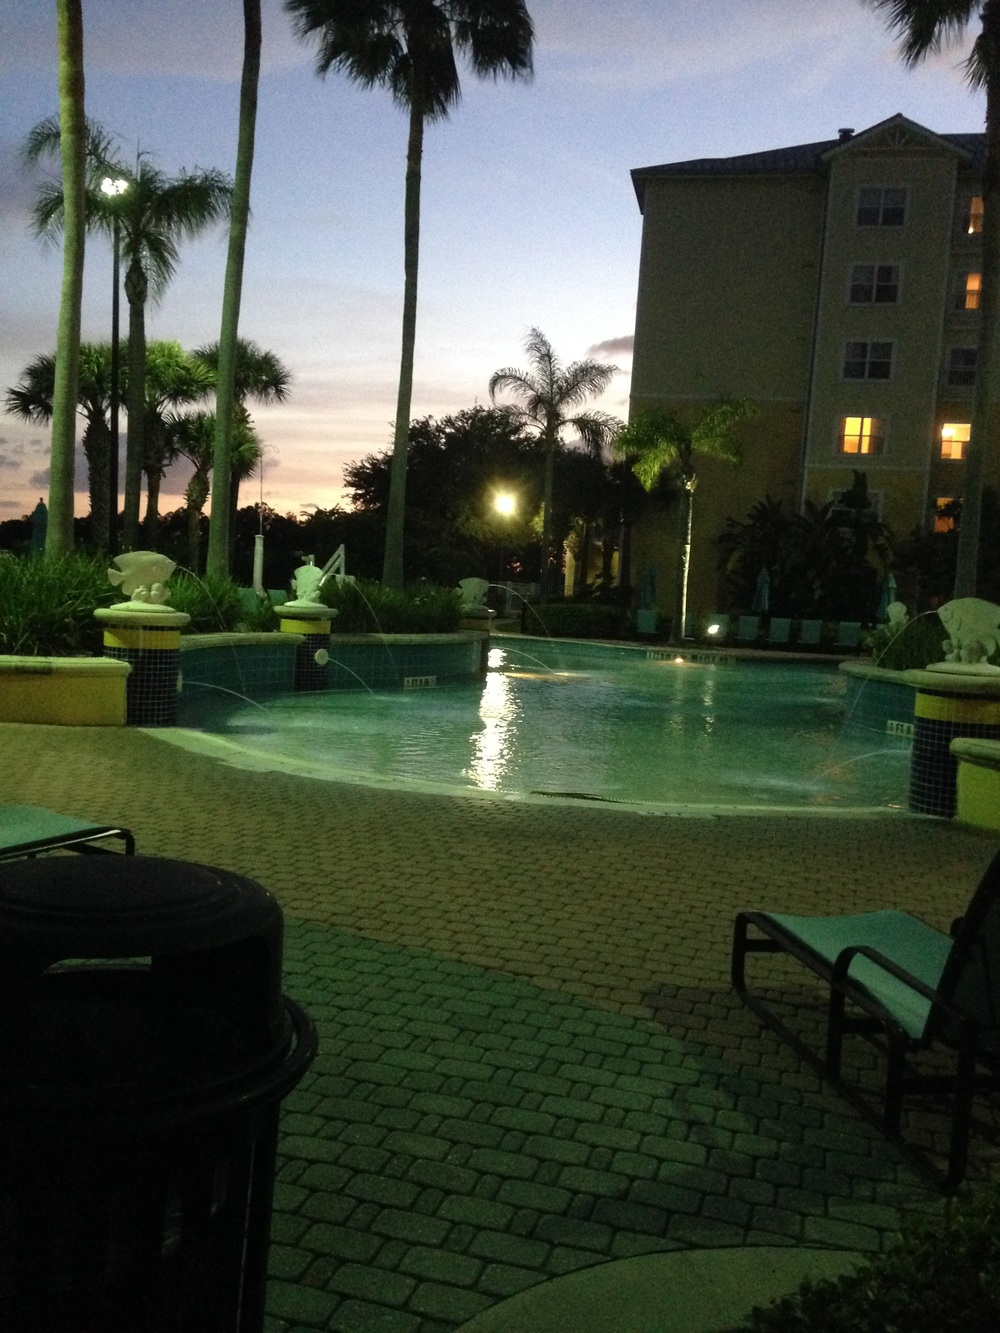 Marriott-Florida-Pool.jpg